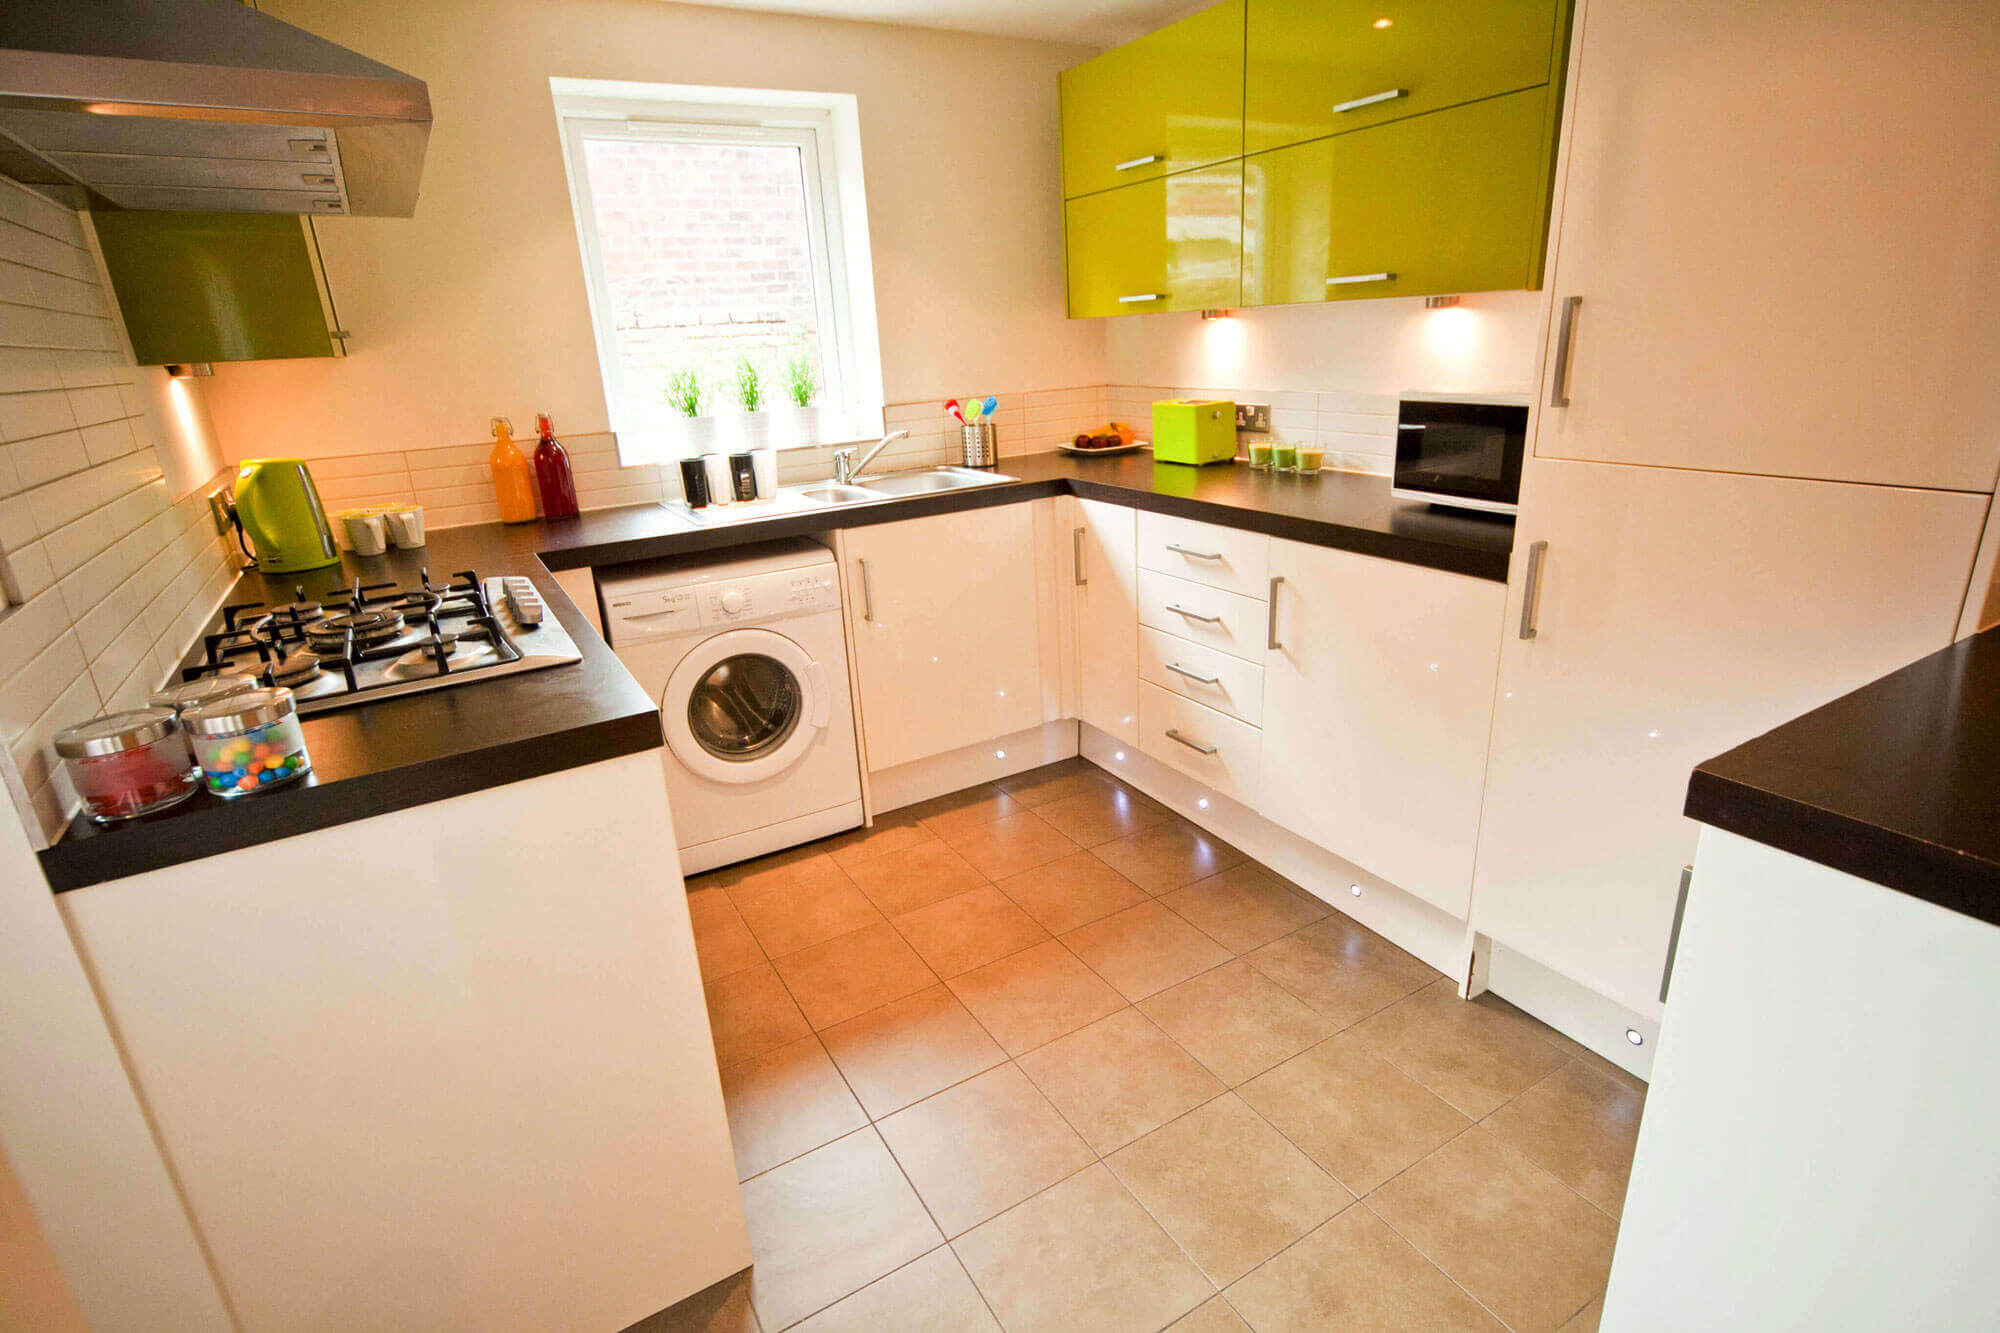 Student Accommodation in Preston showing modern Kitchen and white goods